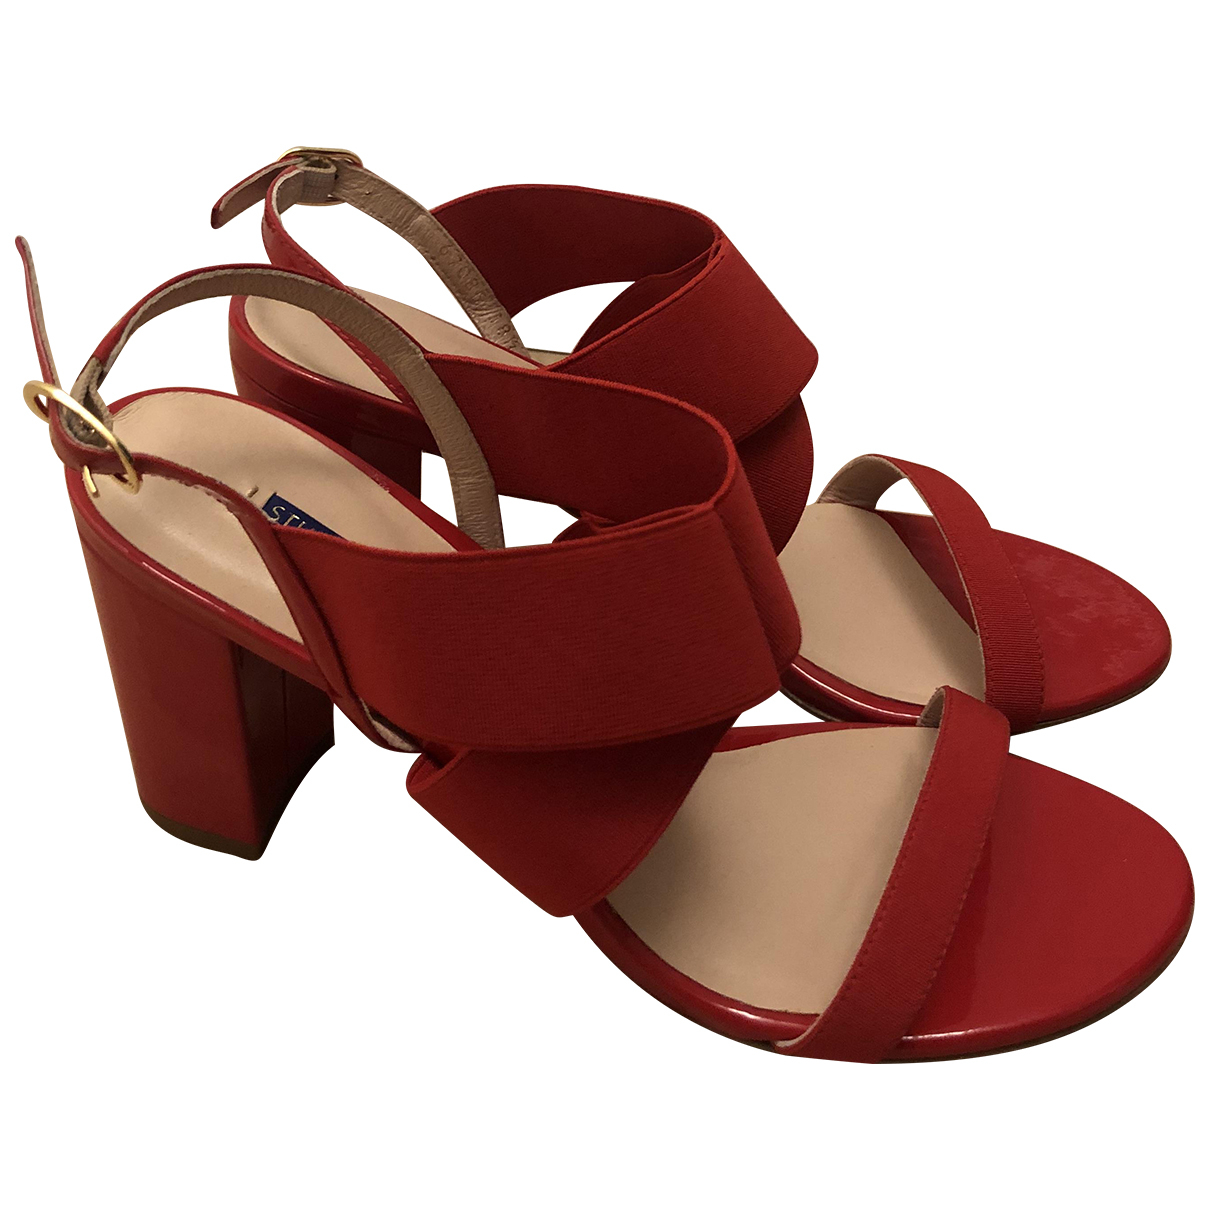 Stuart Weitzman N Red Patent leather Sandals for Women 38.5 EU